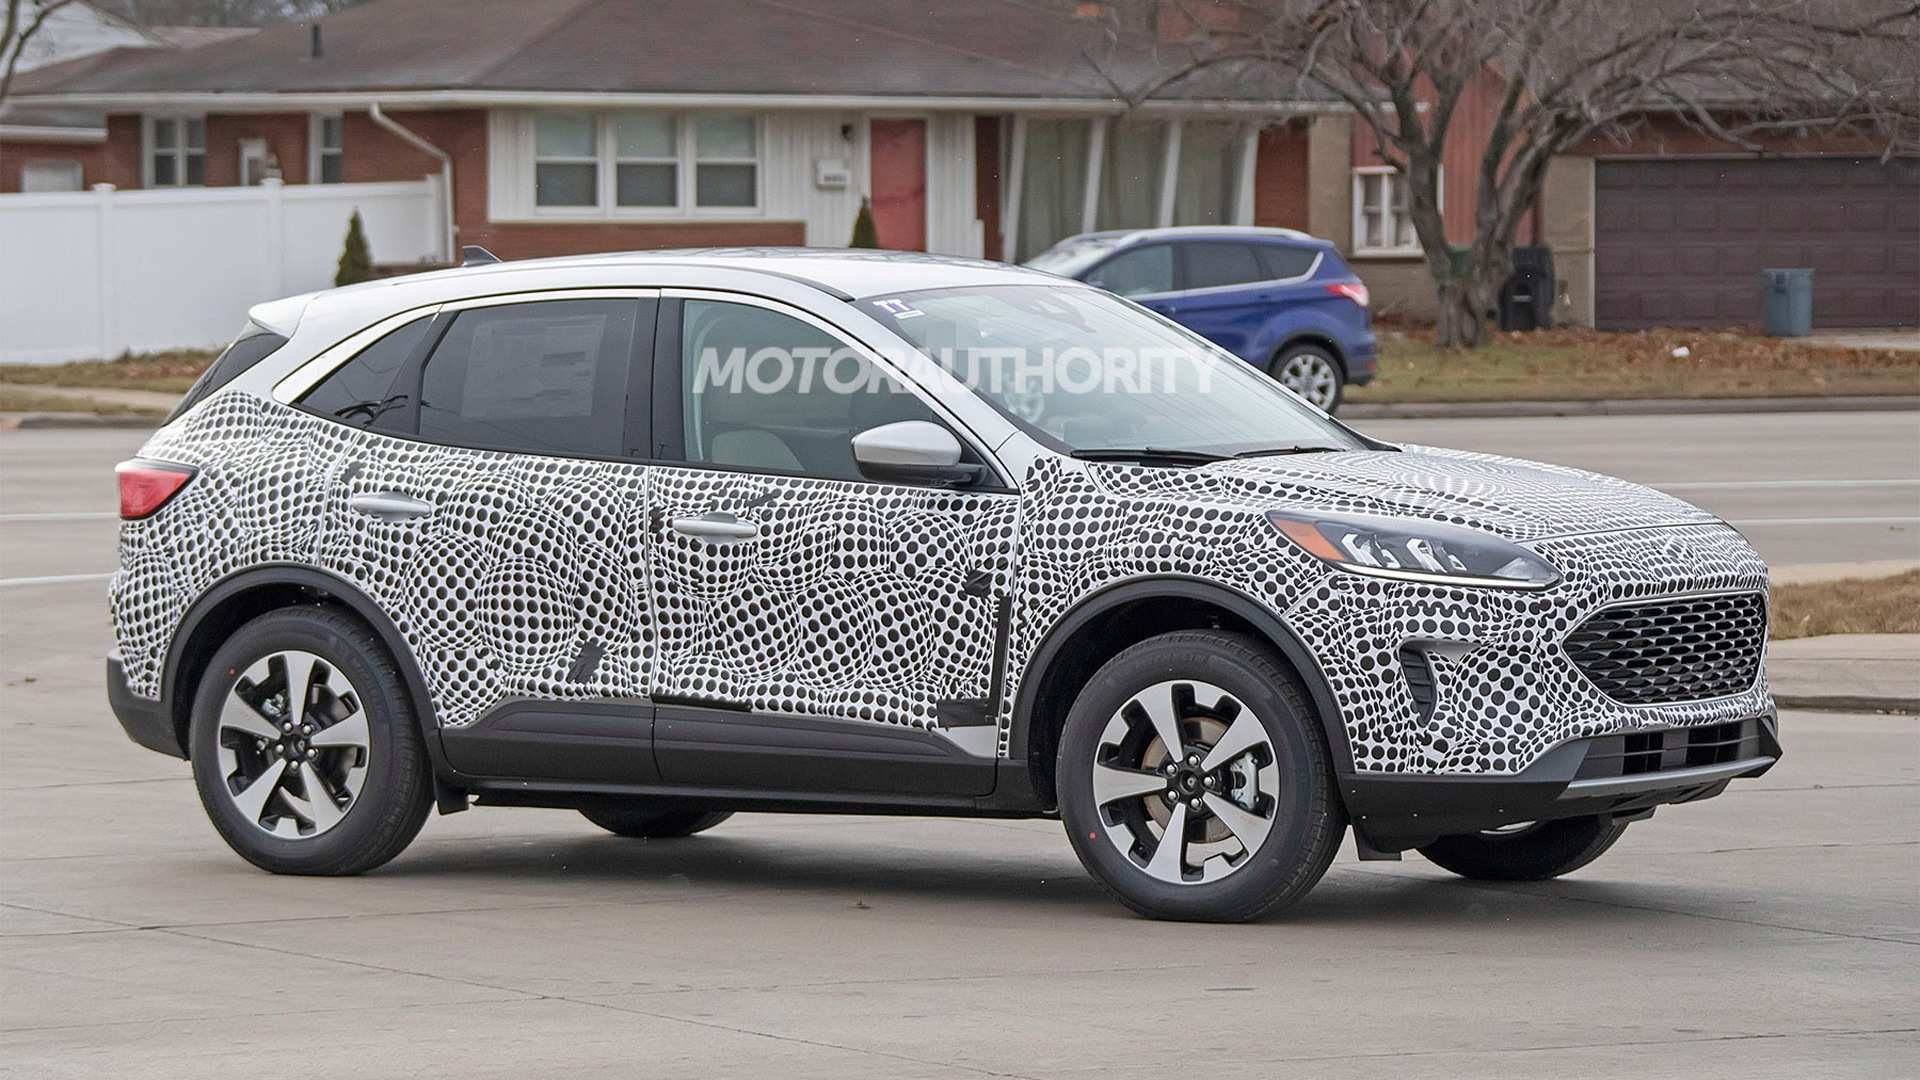 26 A Ford Kuga 2020 Spy Shots History